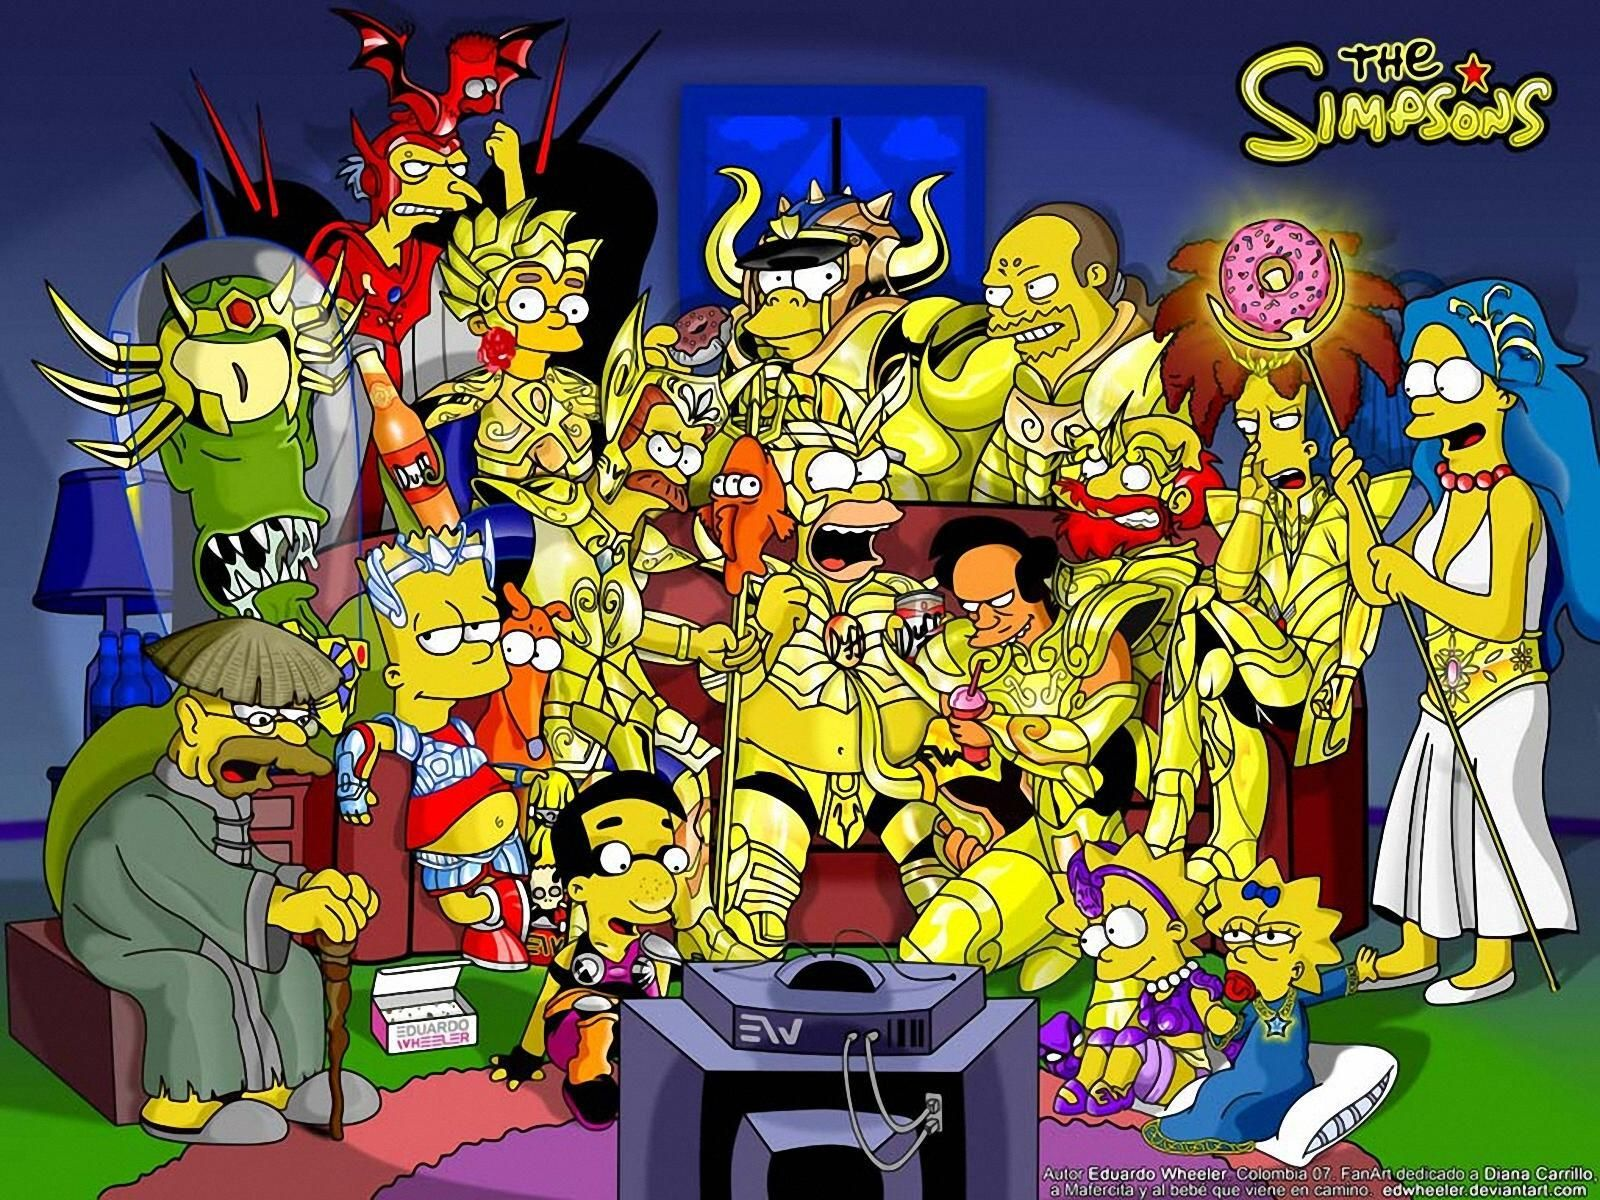 The Simpsons Simpsons Art The Simpsons Cartoon Wallpaper